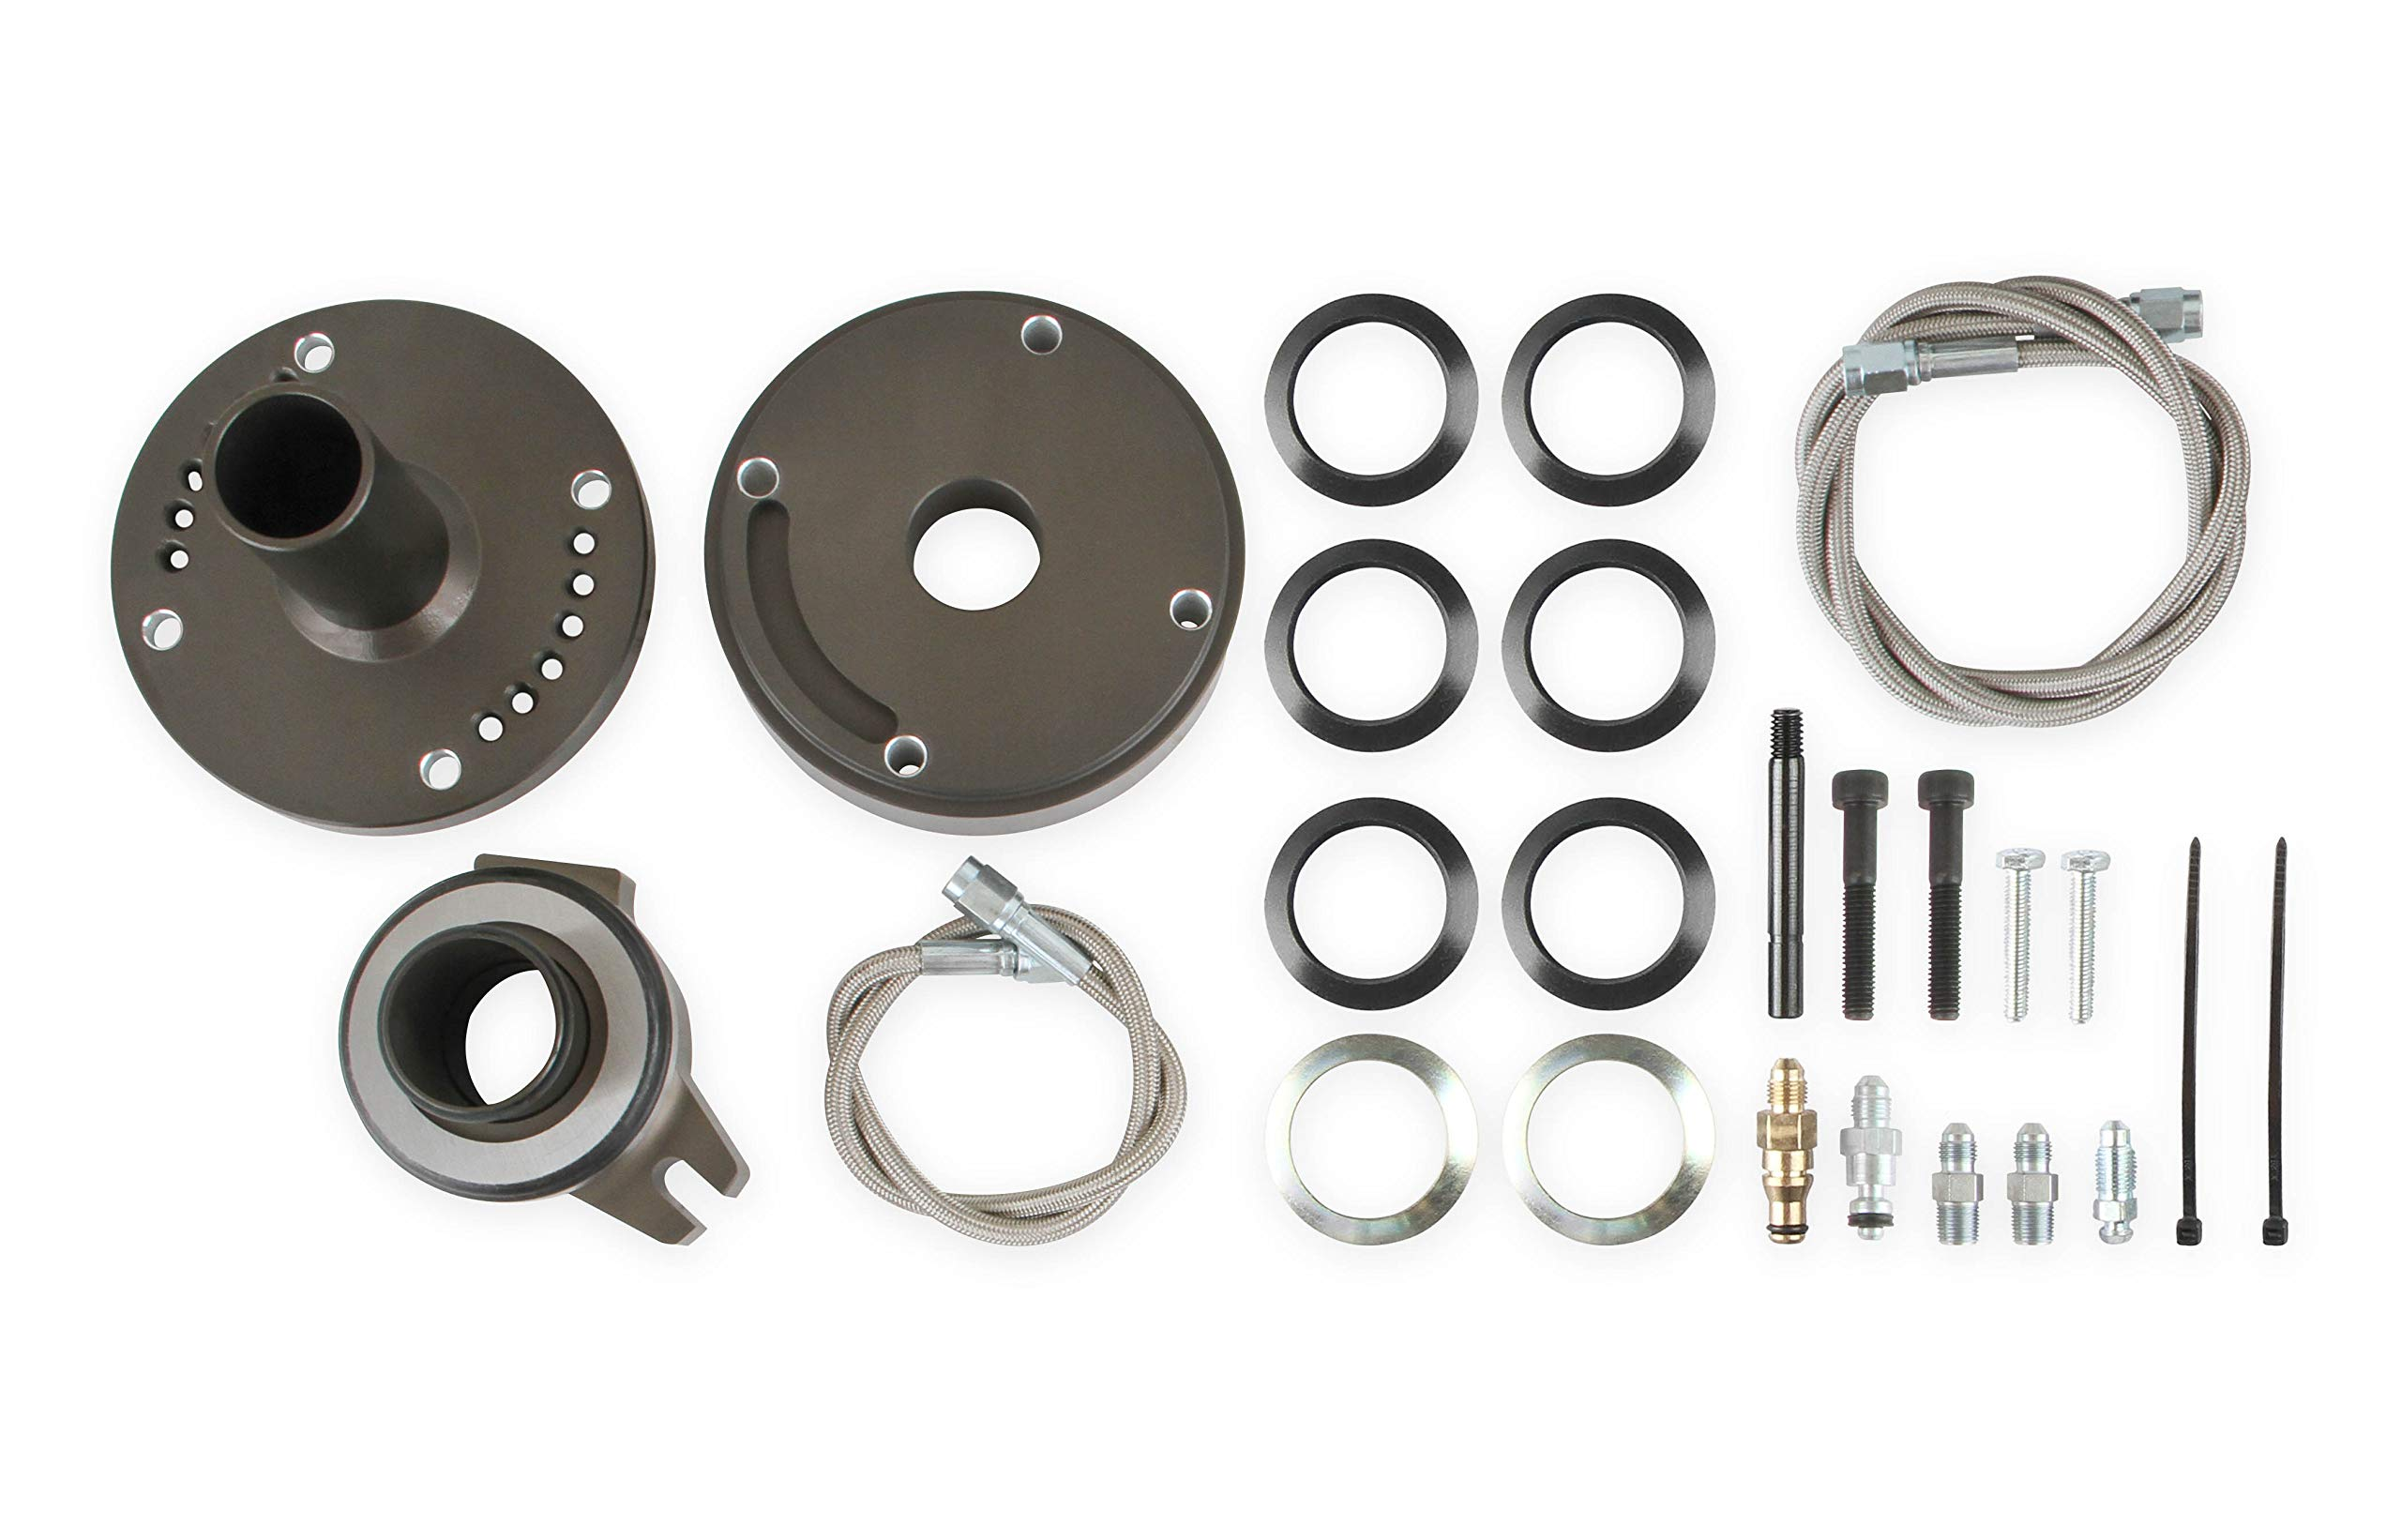 Hays 82-111 Hydraulic Release Bearing Kit for 08-19 Dodge Challenger